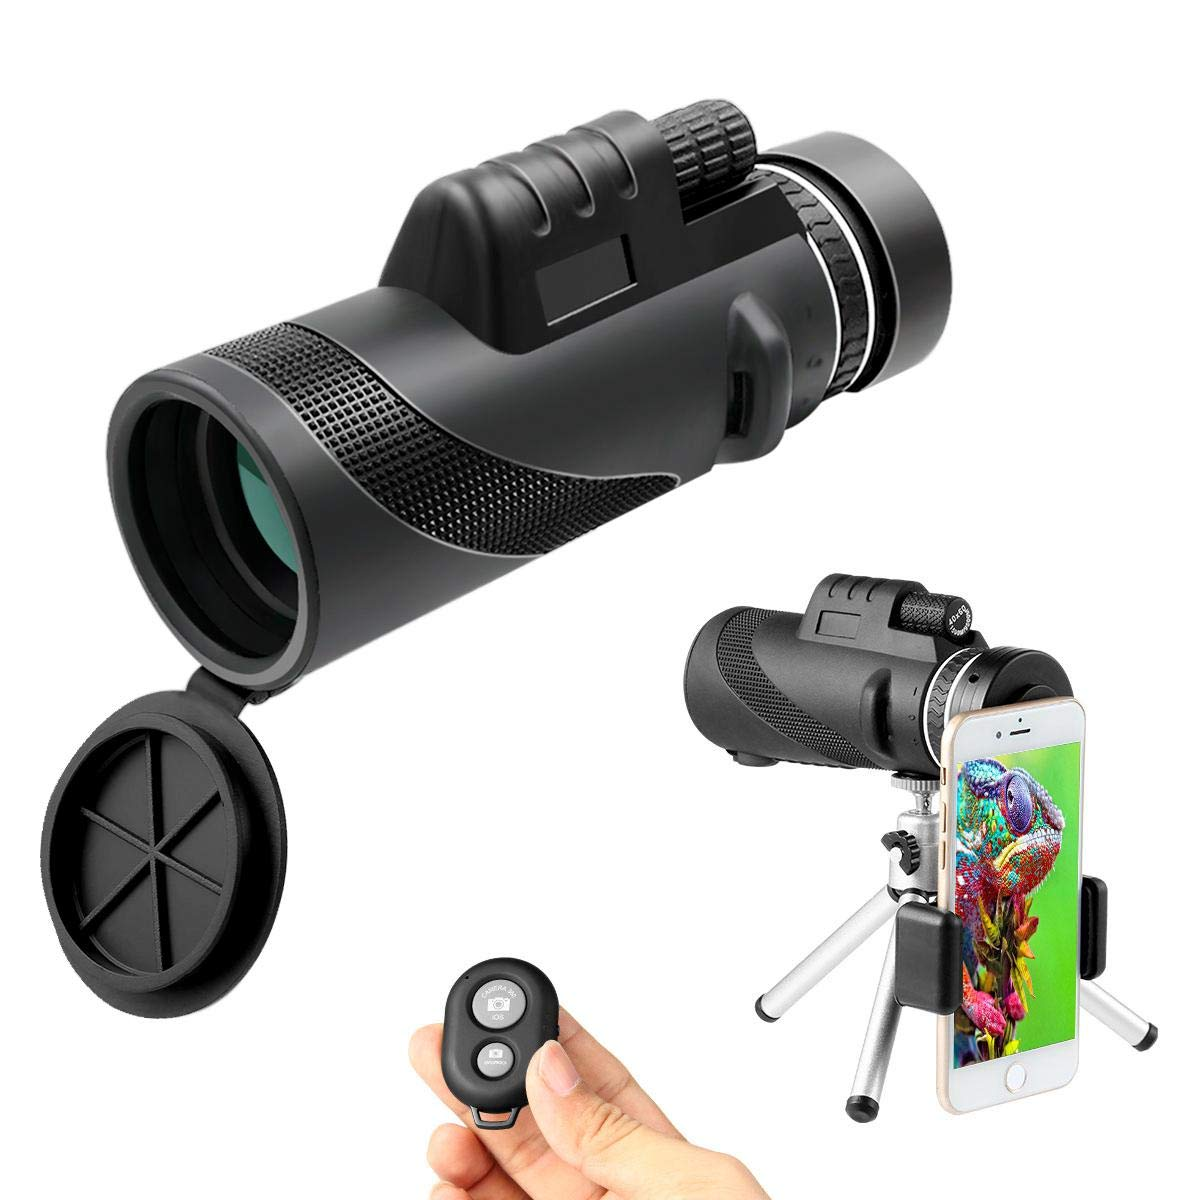 Teepao Monocular Telescope, 12x50 BAK4 Prism FMC High Power Telescopes with Phone Adaptor and Tripod, Low Night Vision Waterproof Fog-Proof for Bird Watching Hunting Camping Travelling